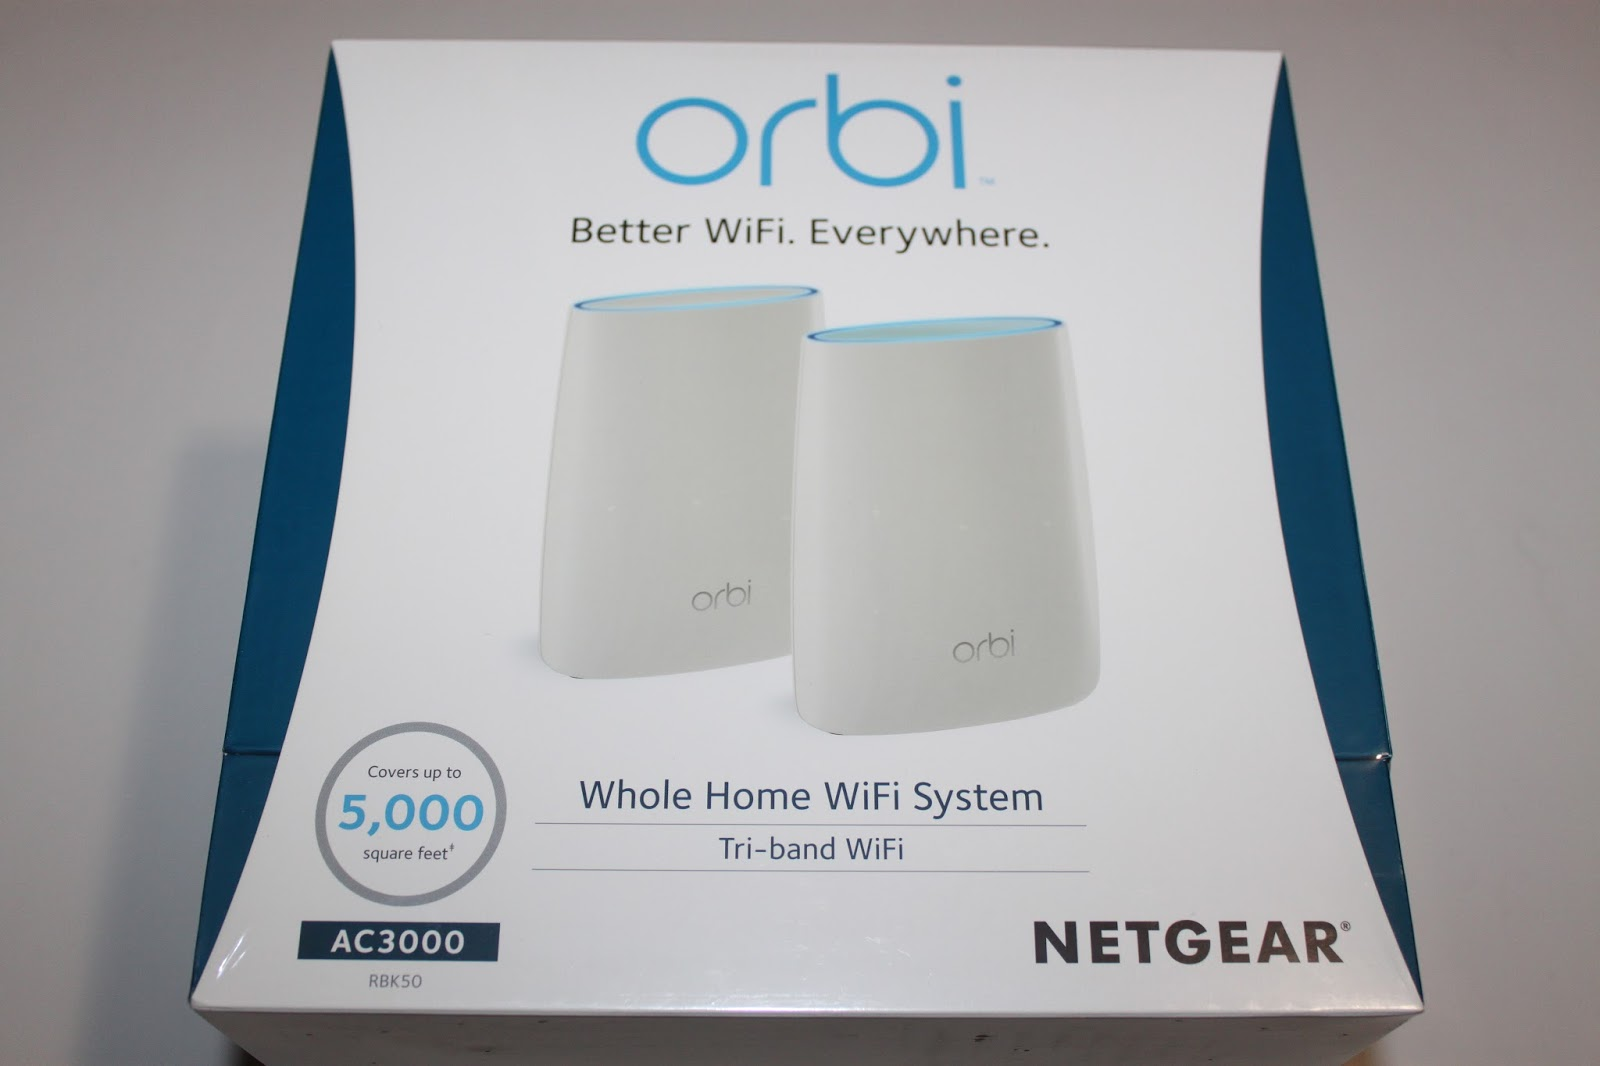 Stereowise Plus: NETGEAR Orbi WiFi System AC3000 RBK50 Review